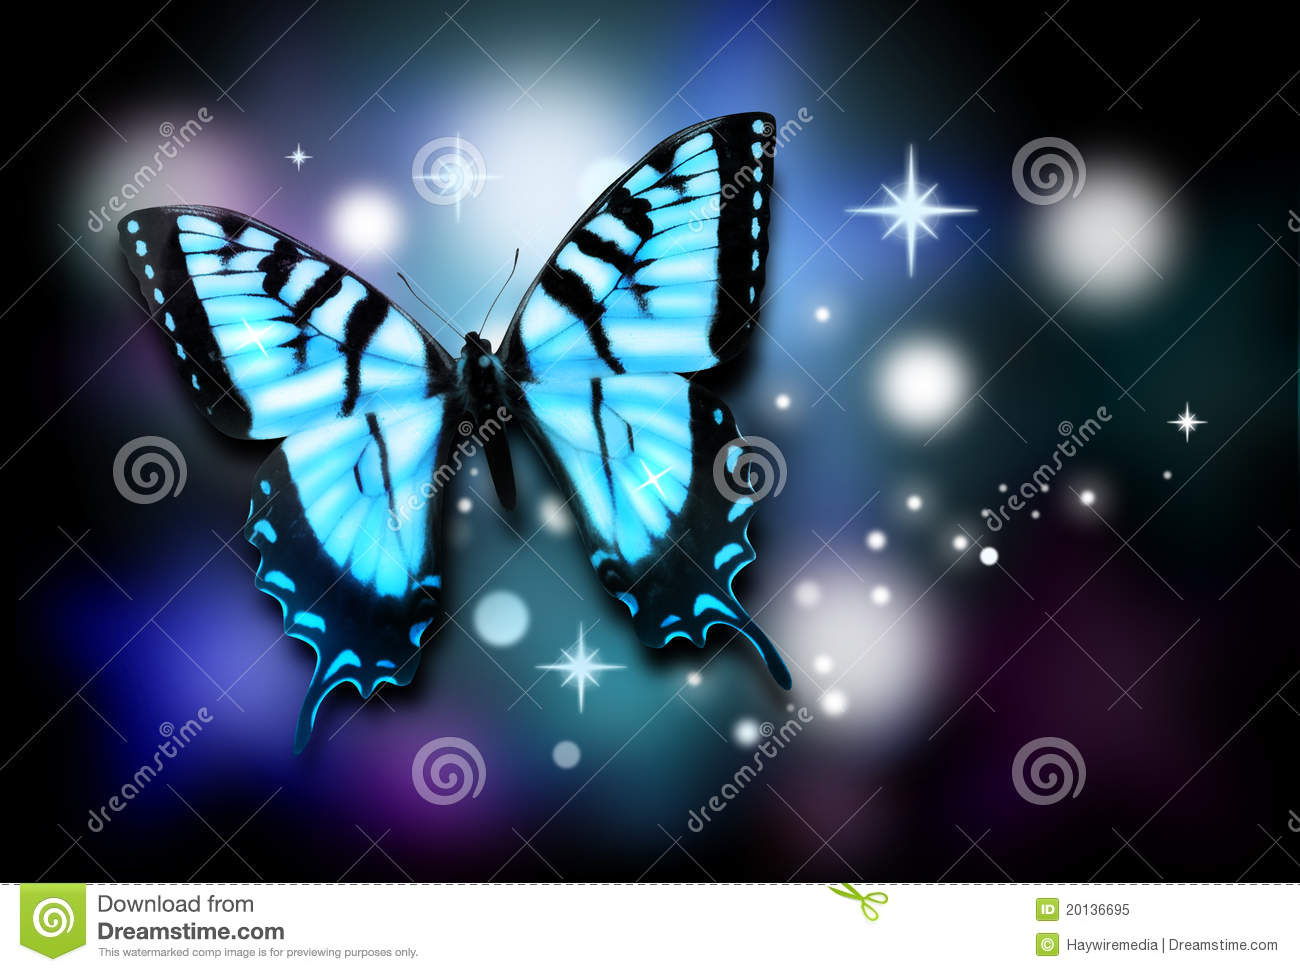 Blue Butterfly with Sparkles on Black Background